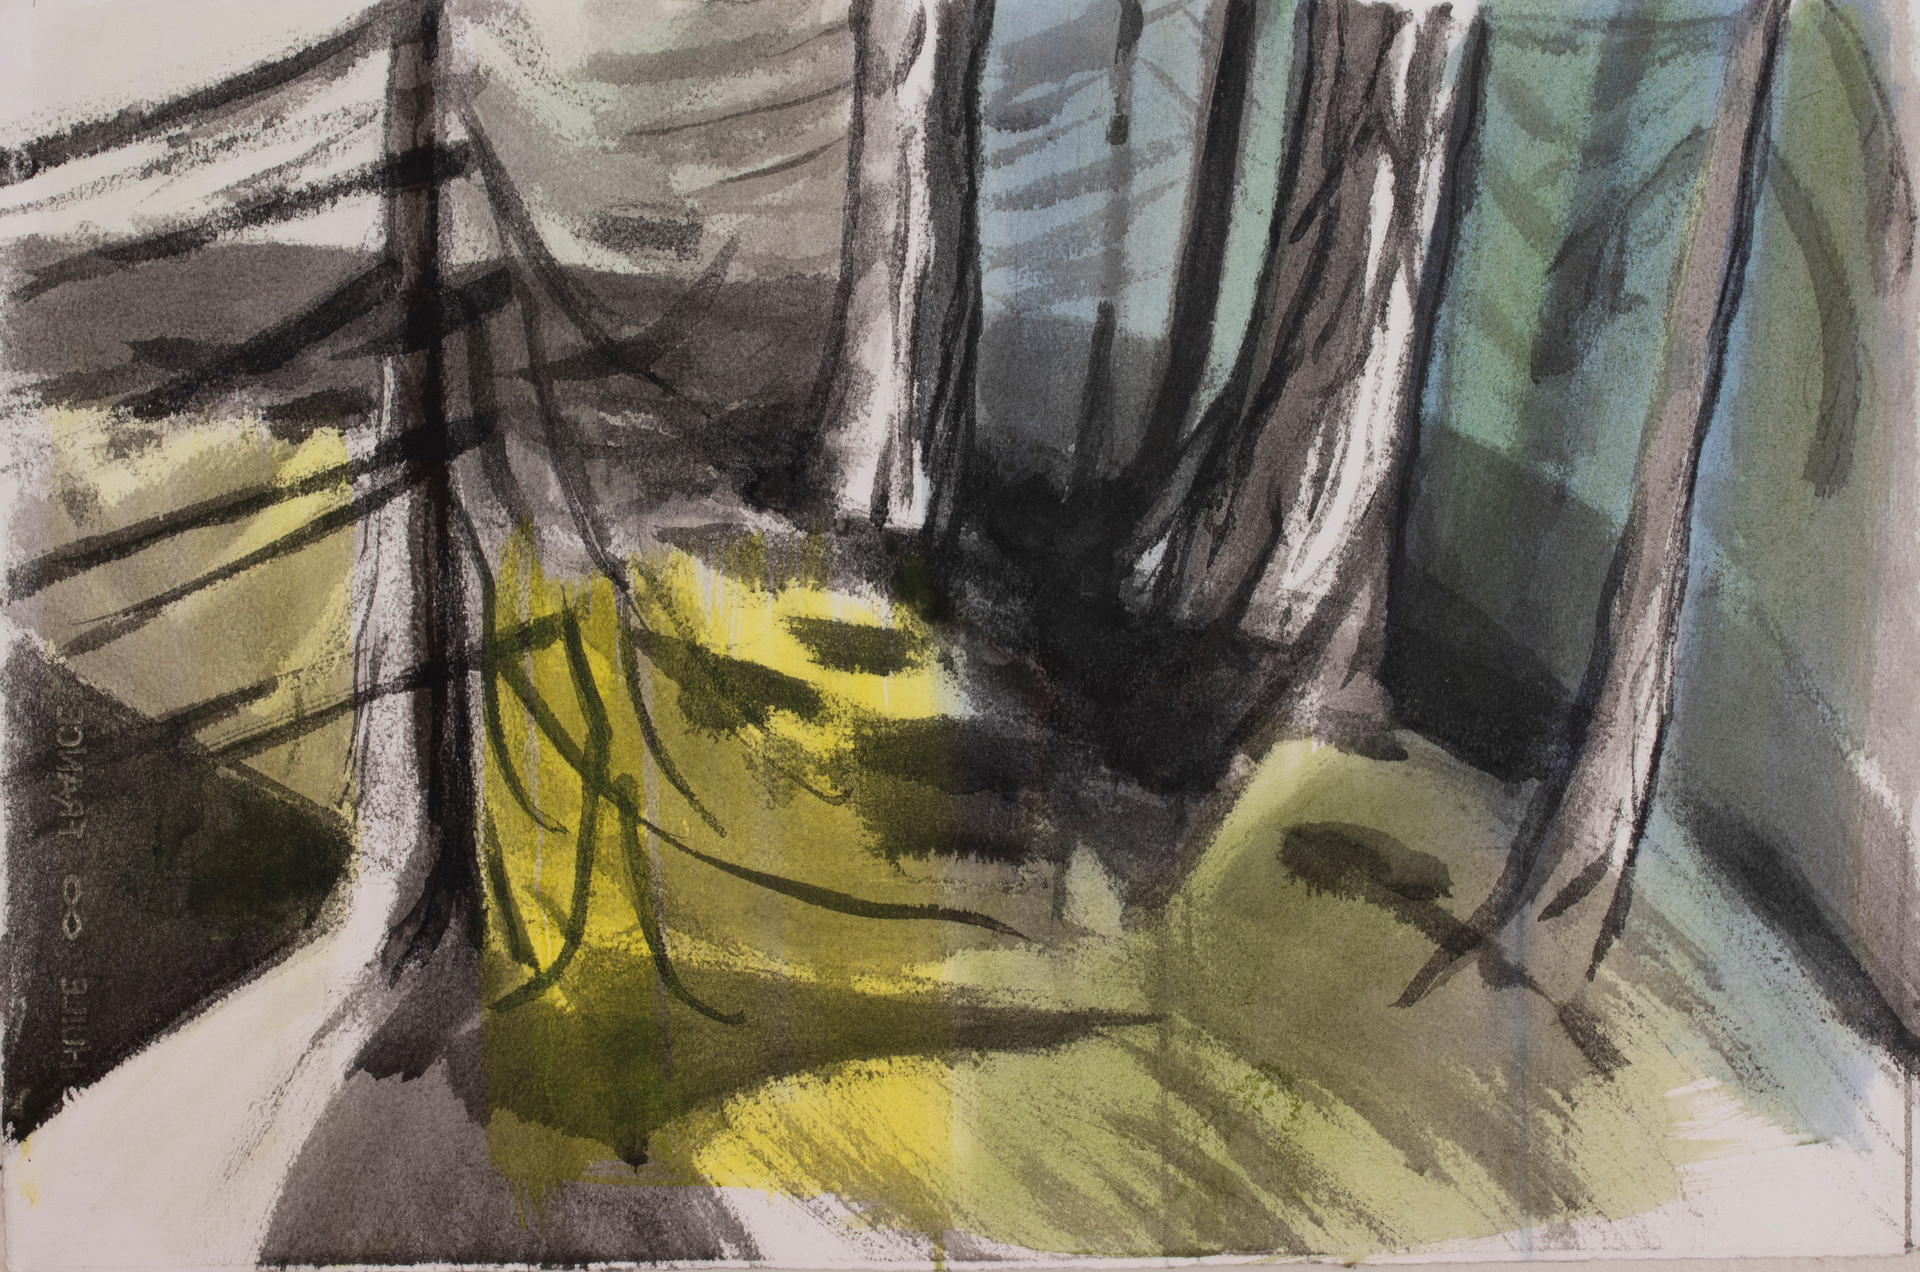 Forest Light, 2020, india ink and oil on Arches oil paper, 22x 15